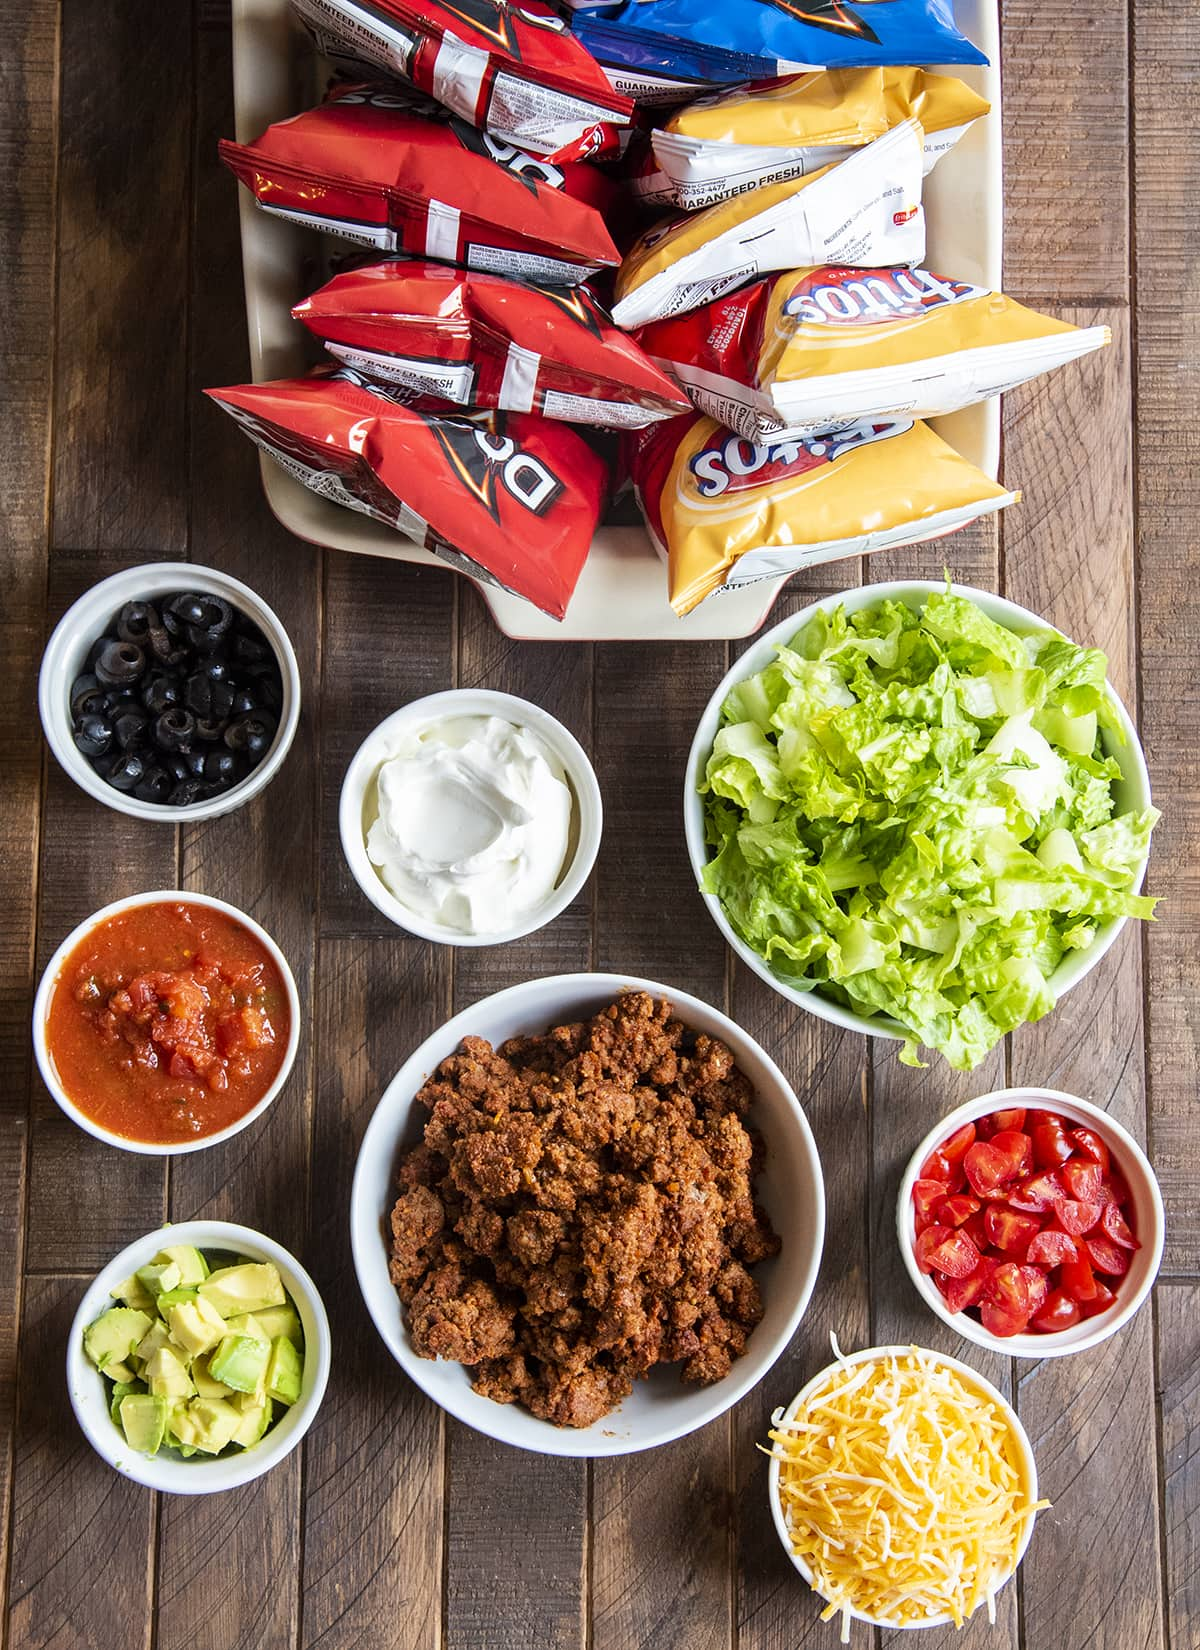 An overhead shot of the ingredients needed to make walking tacos.